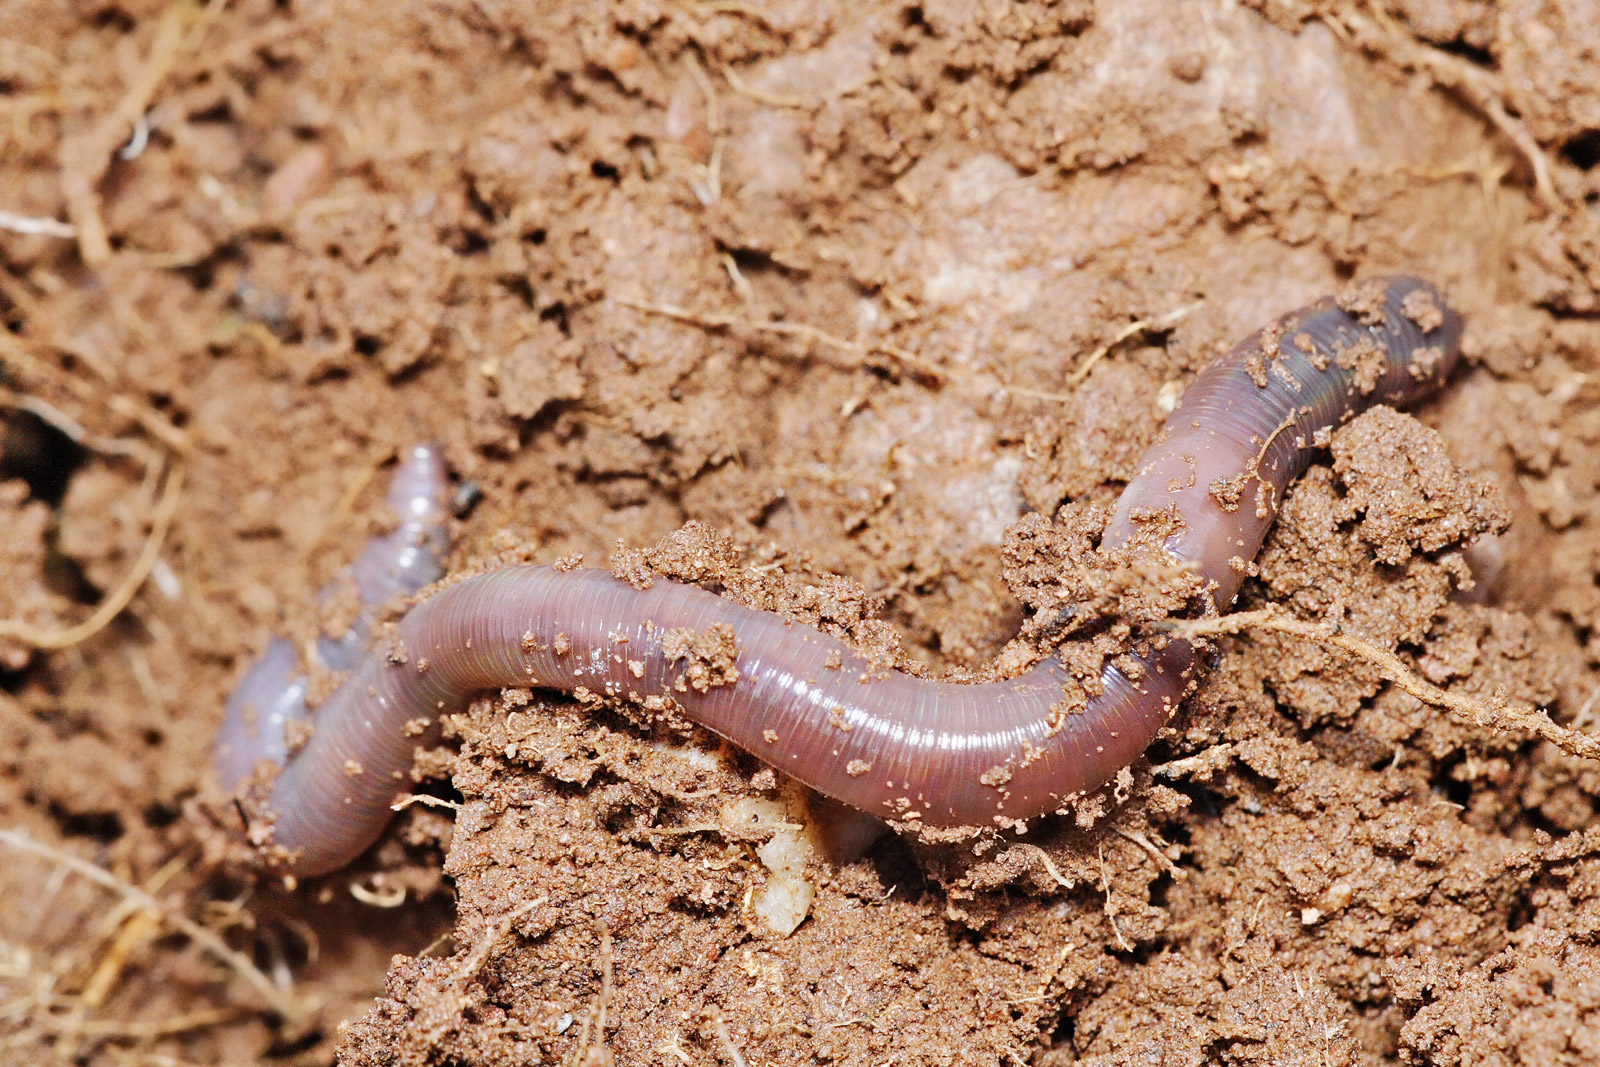 The Newest Invasive Species is a Worm